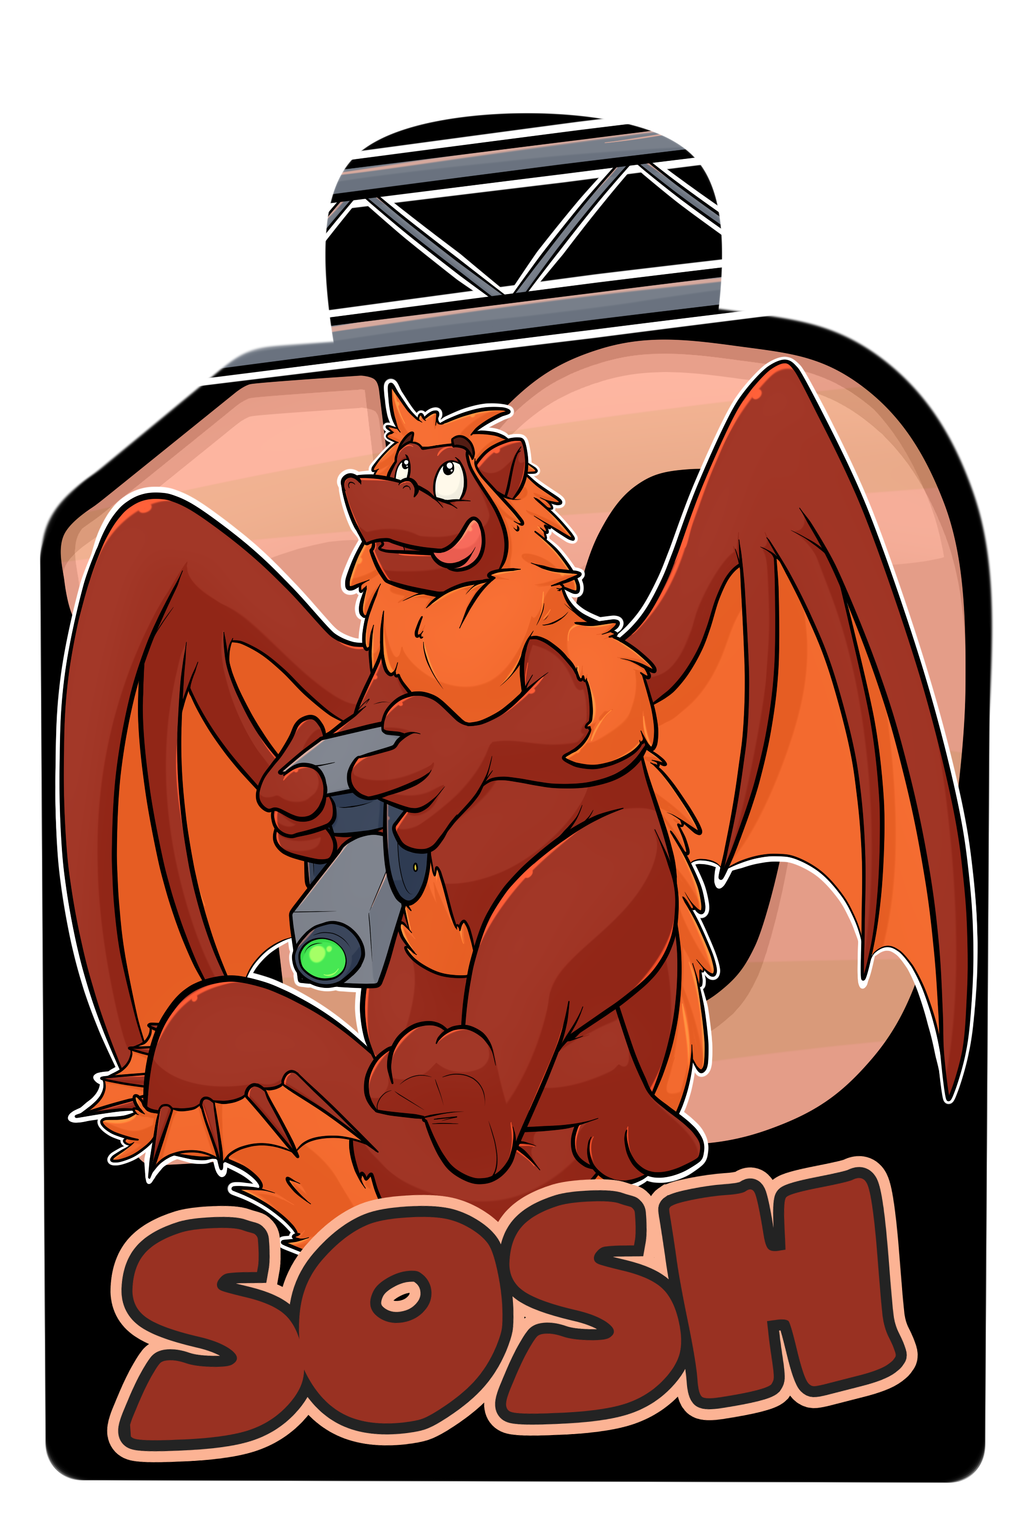 Confuzzled 2017 Badges - Sosh